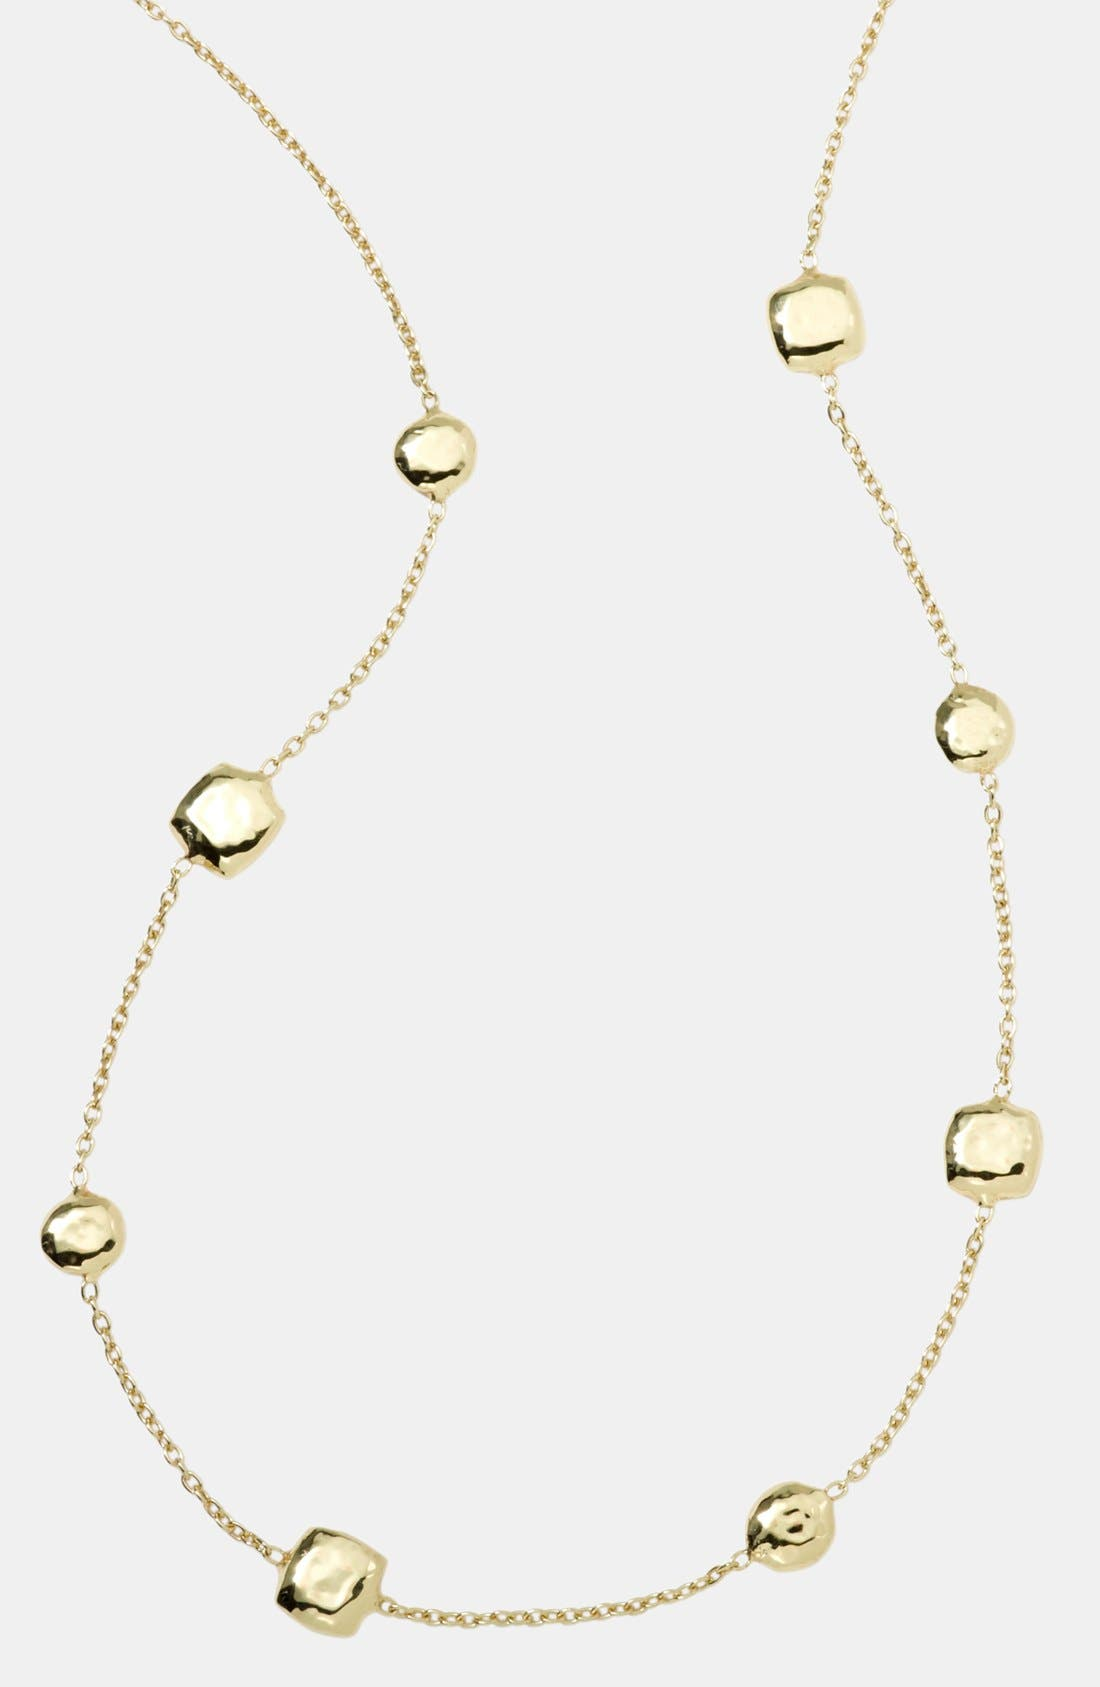 'Glamazon' 18k Gold Station Necklace,                             Main thumbnail 1, color,                             YELLOW GOLD